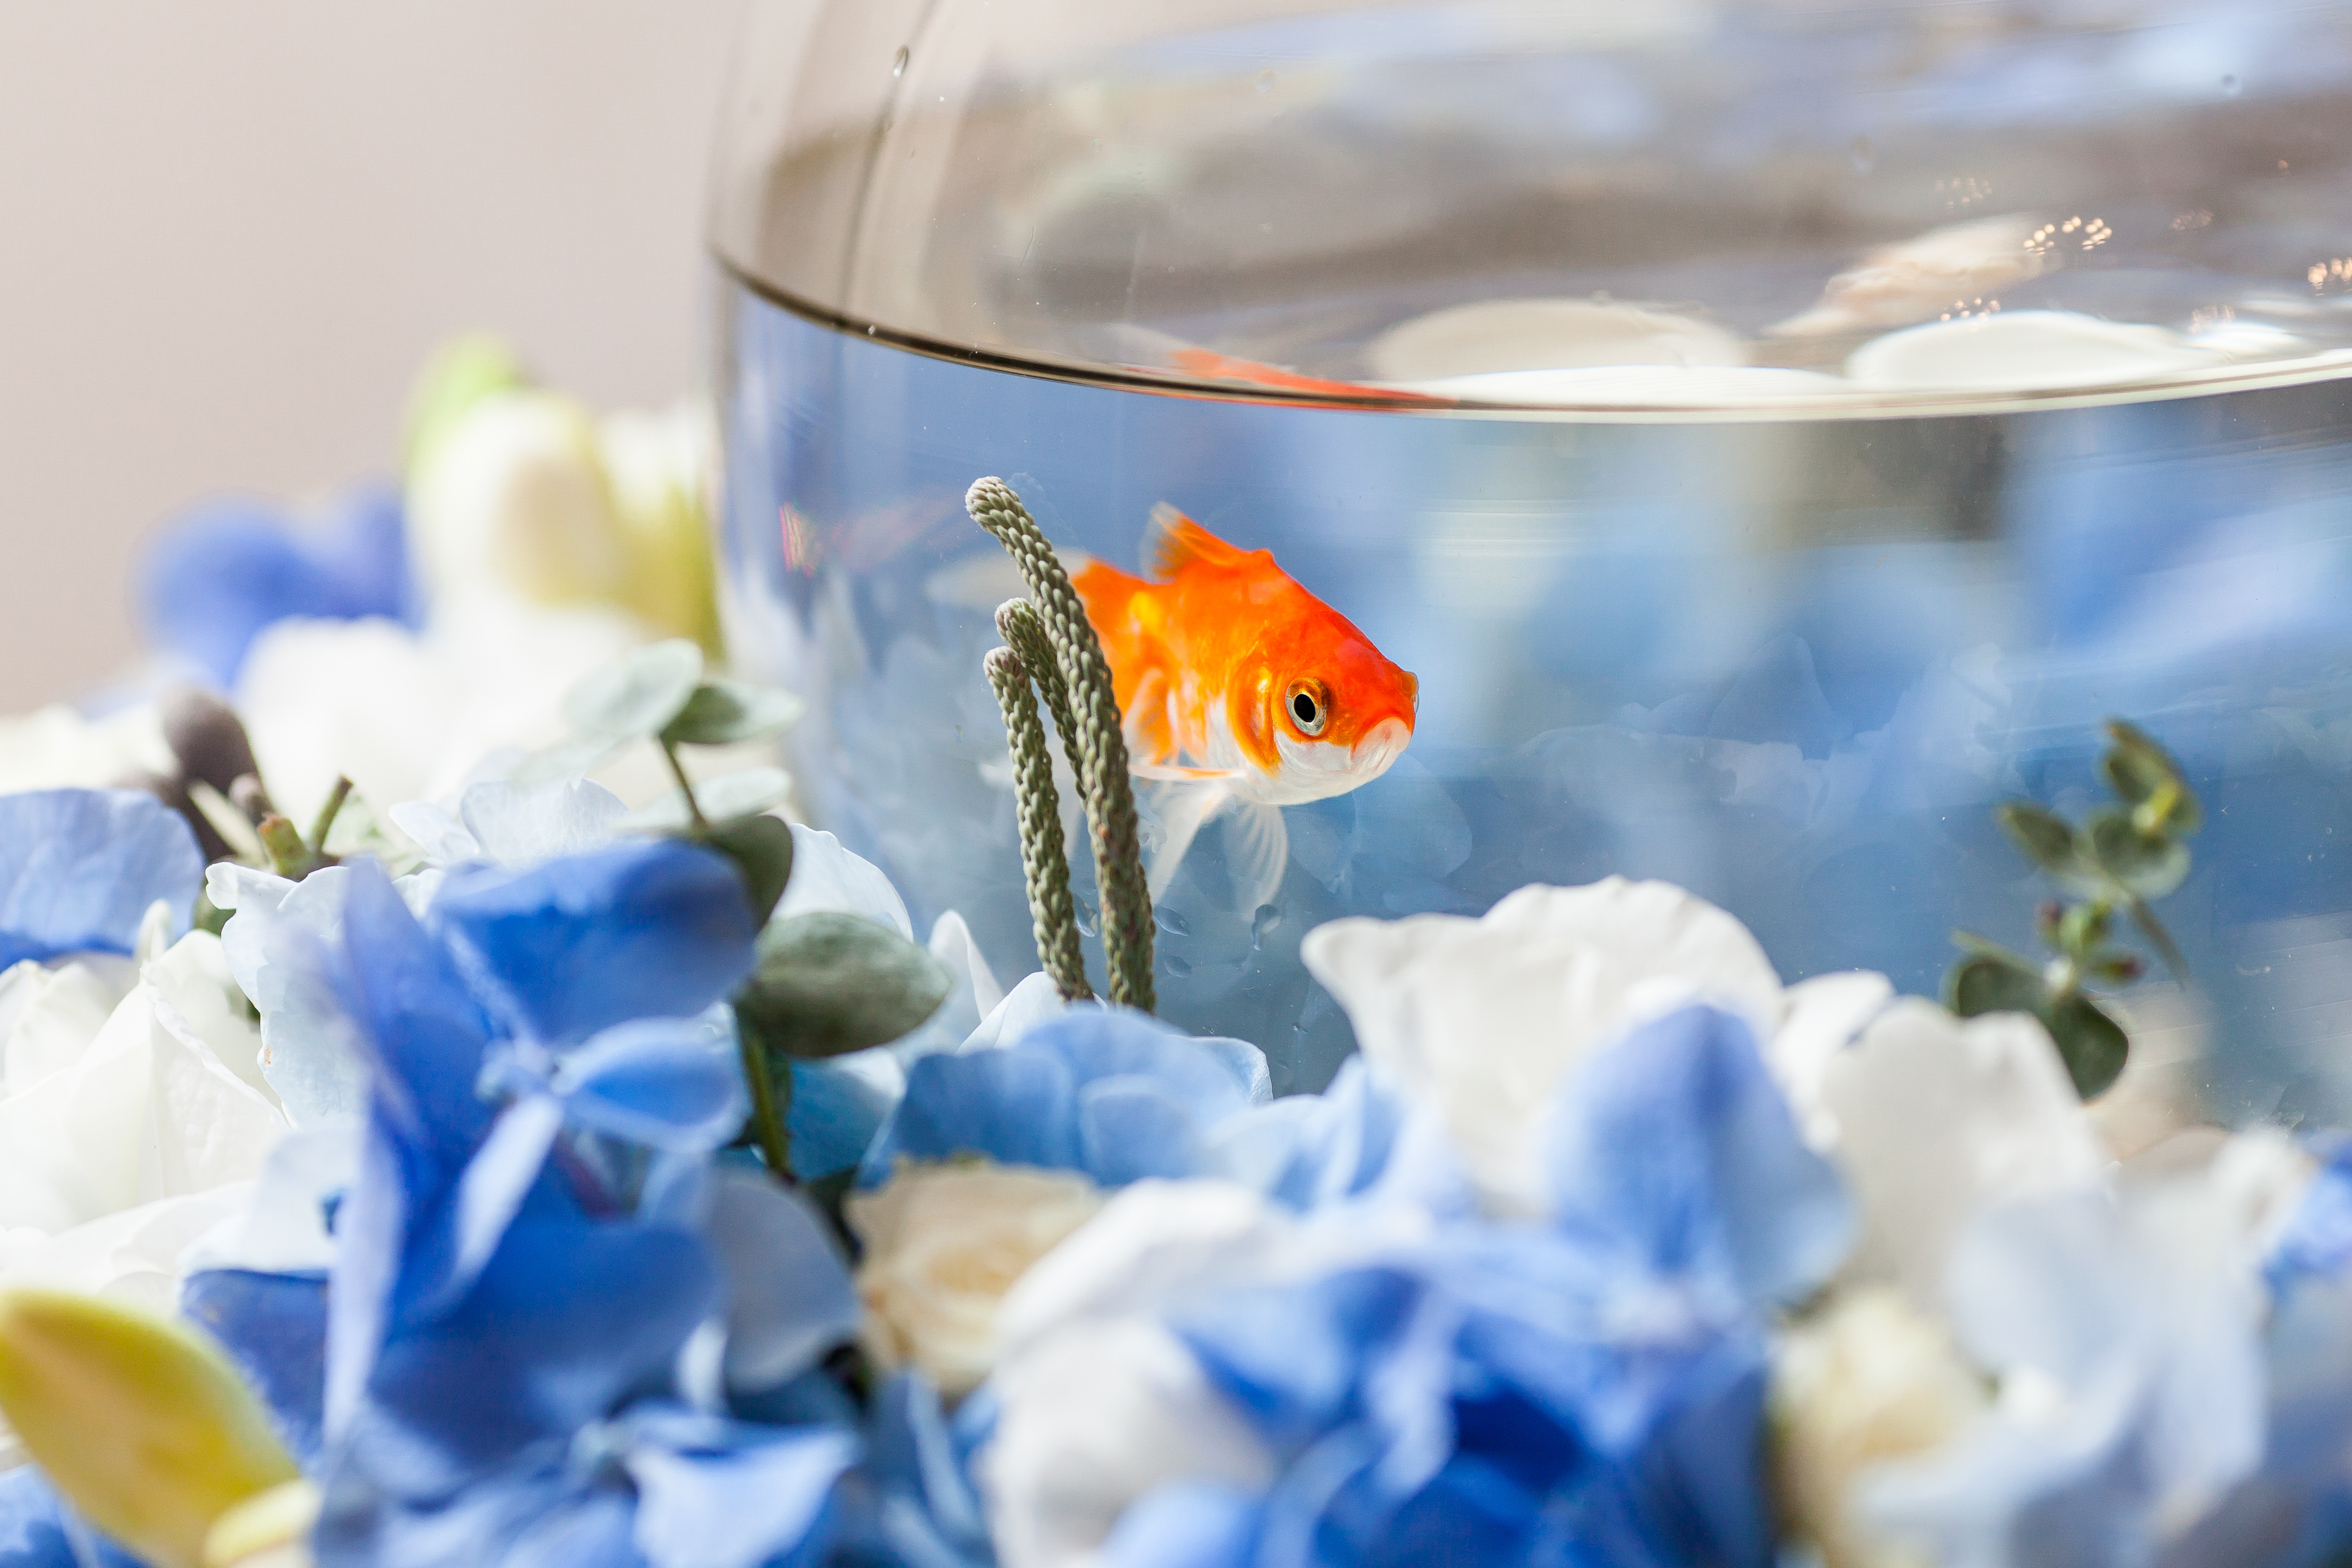 Ideas for Science Fair Projects on Fish